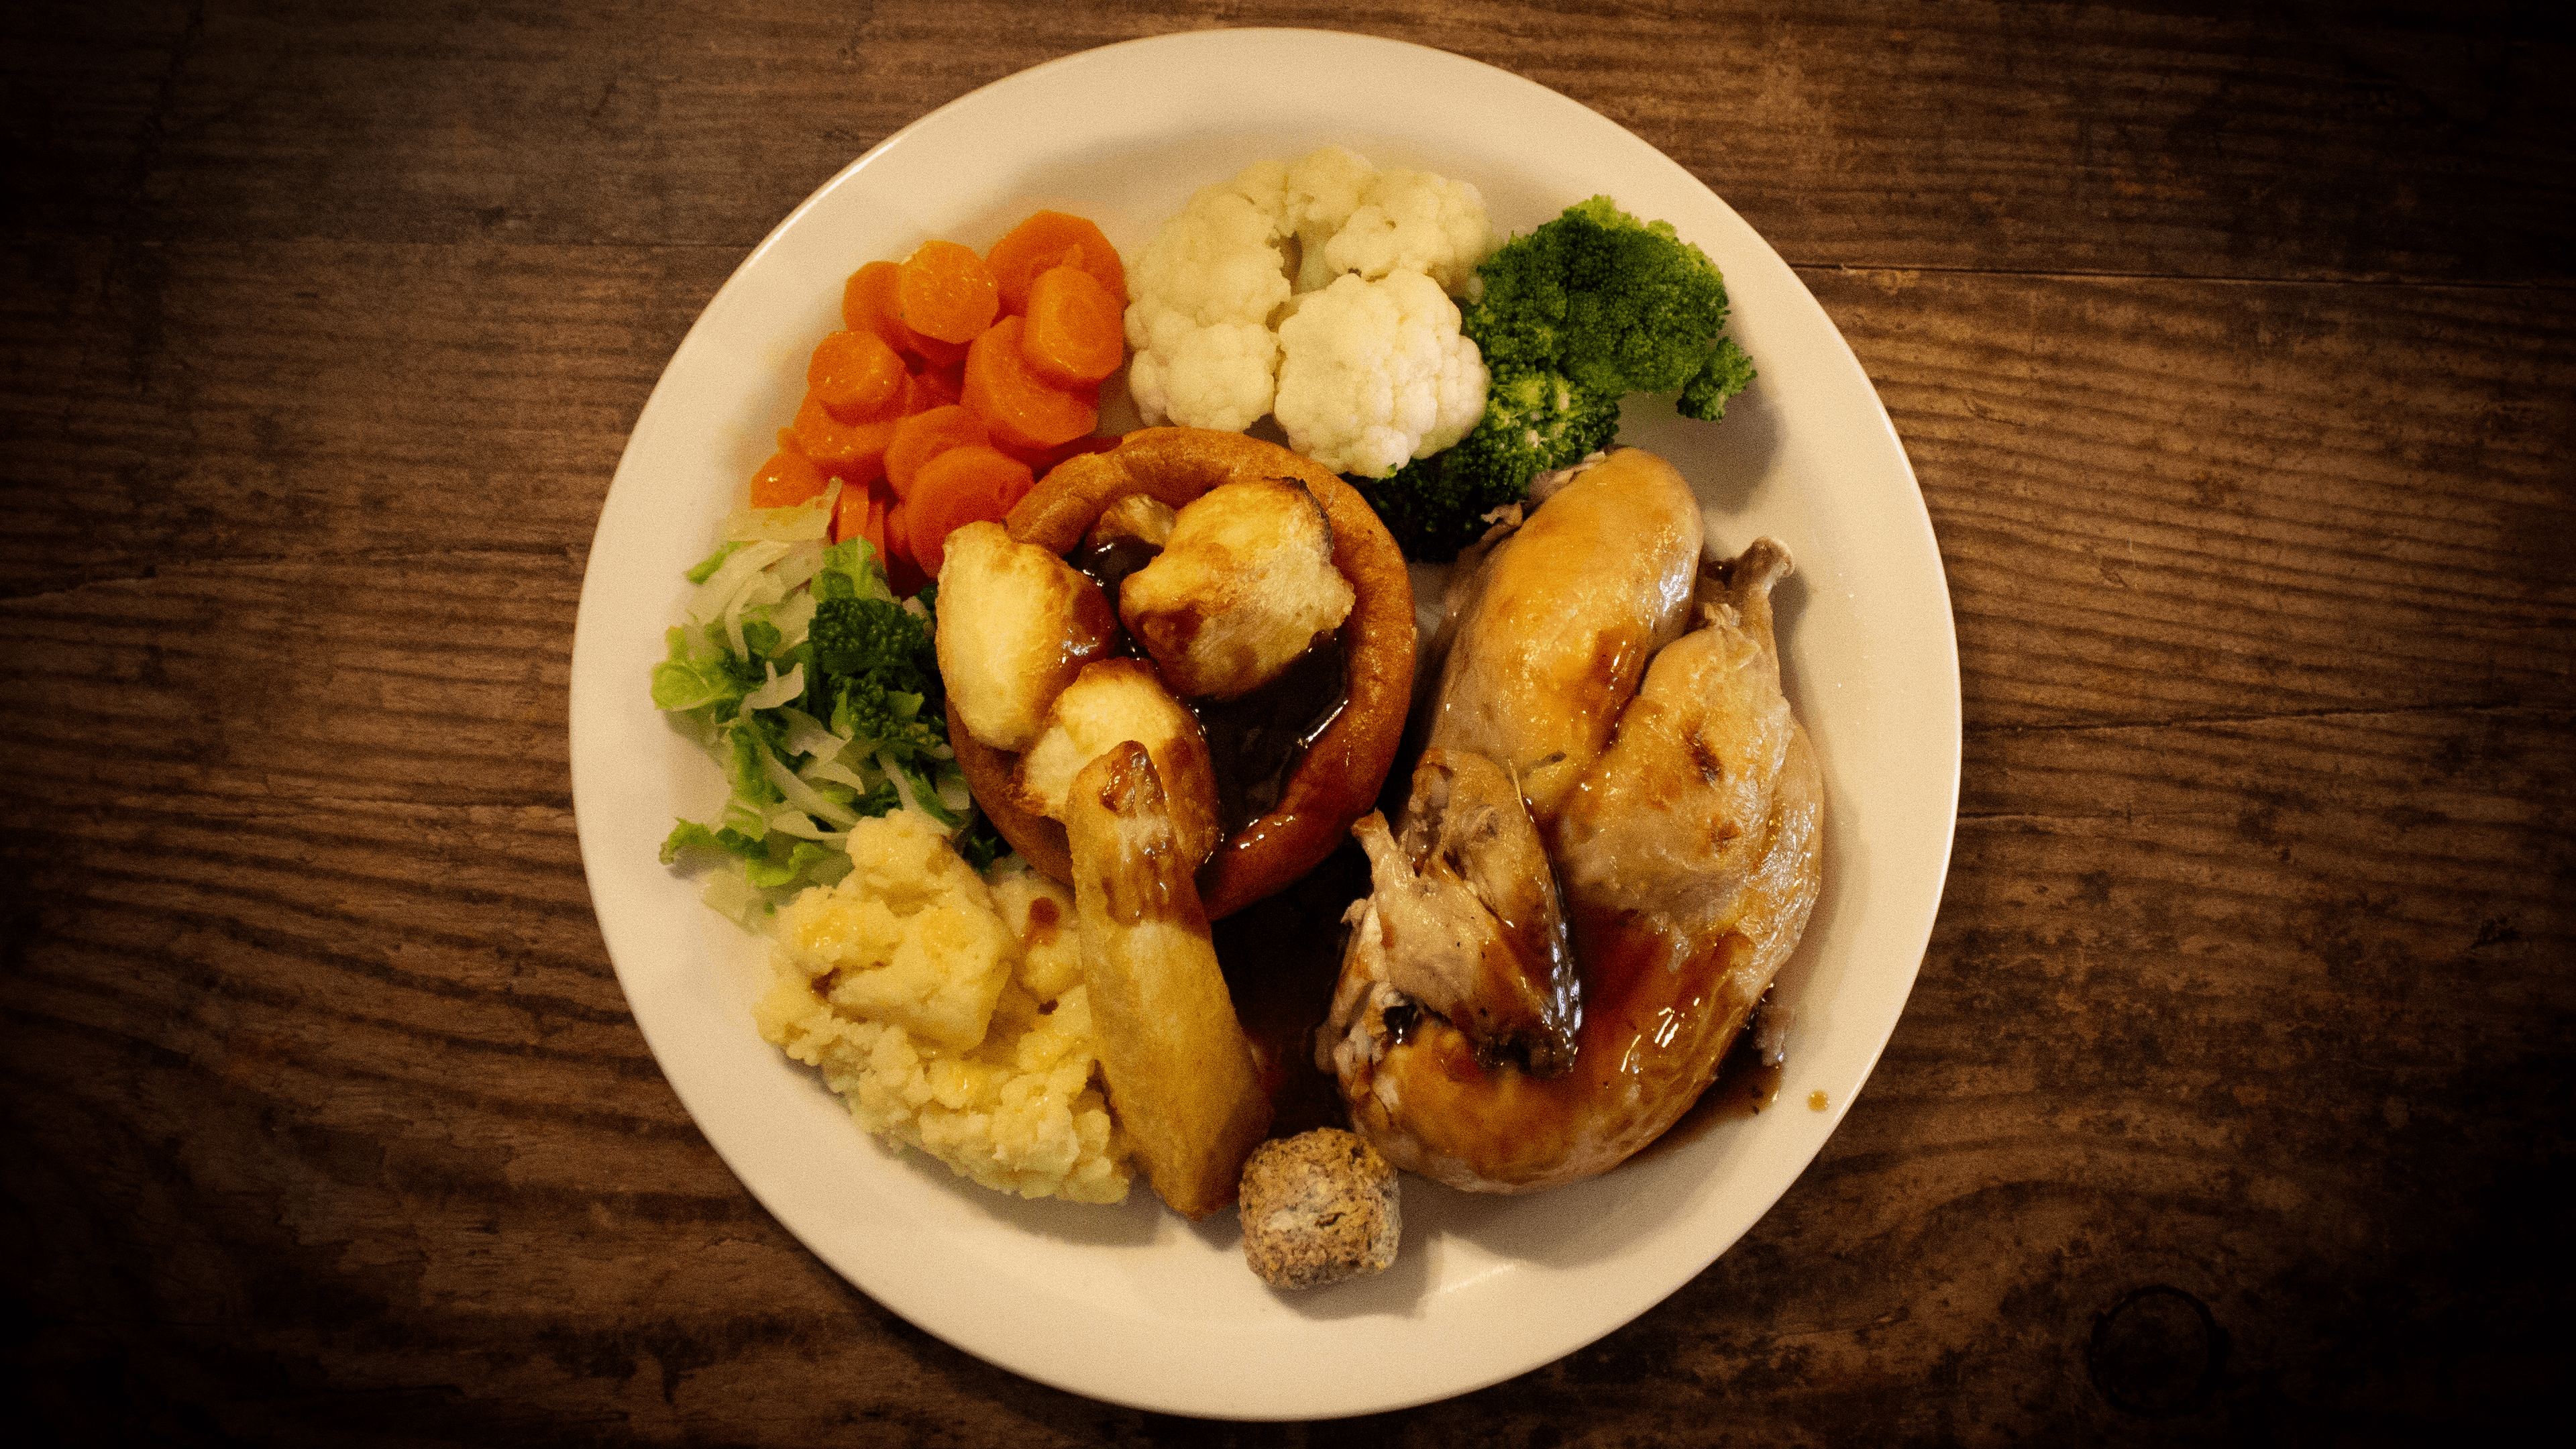 Chicken-on-plate.png